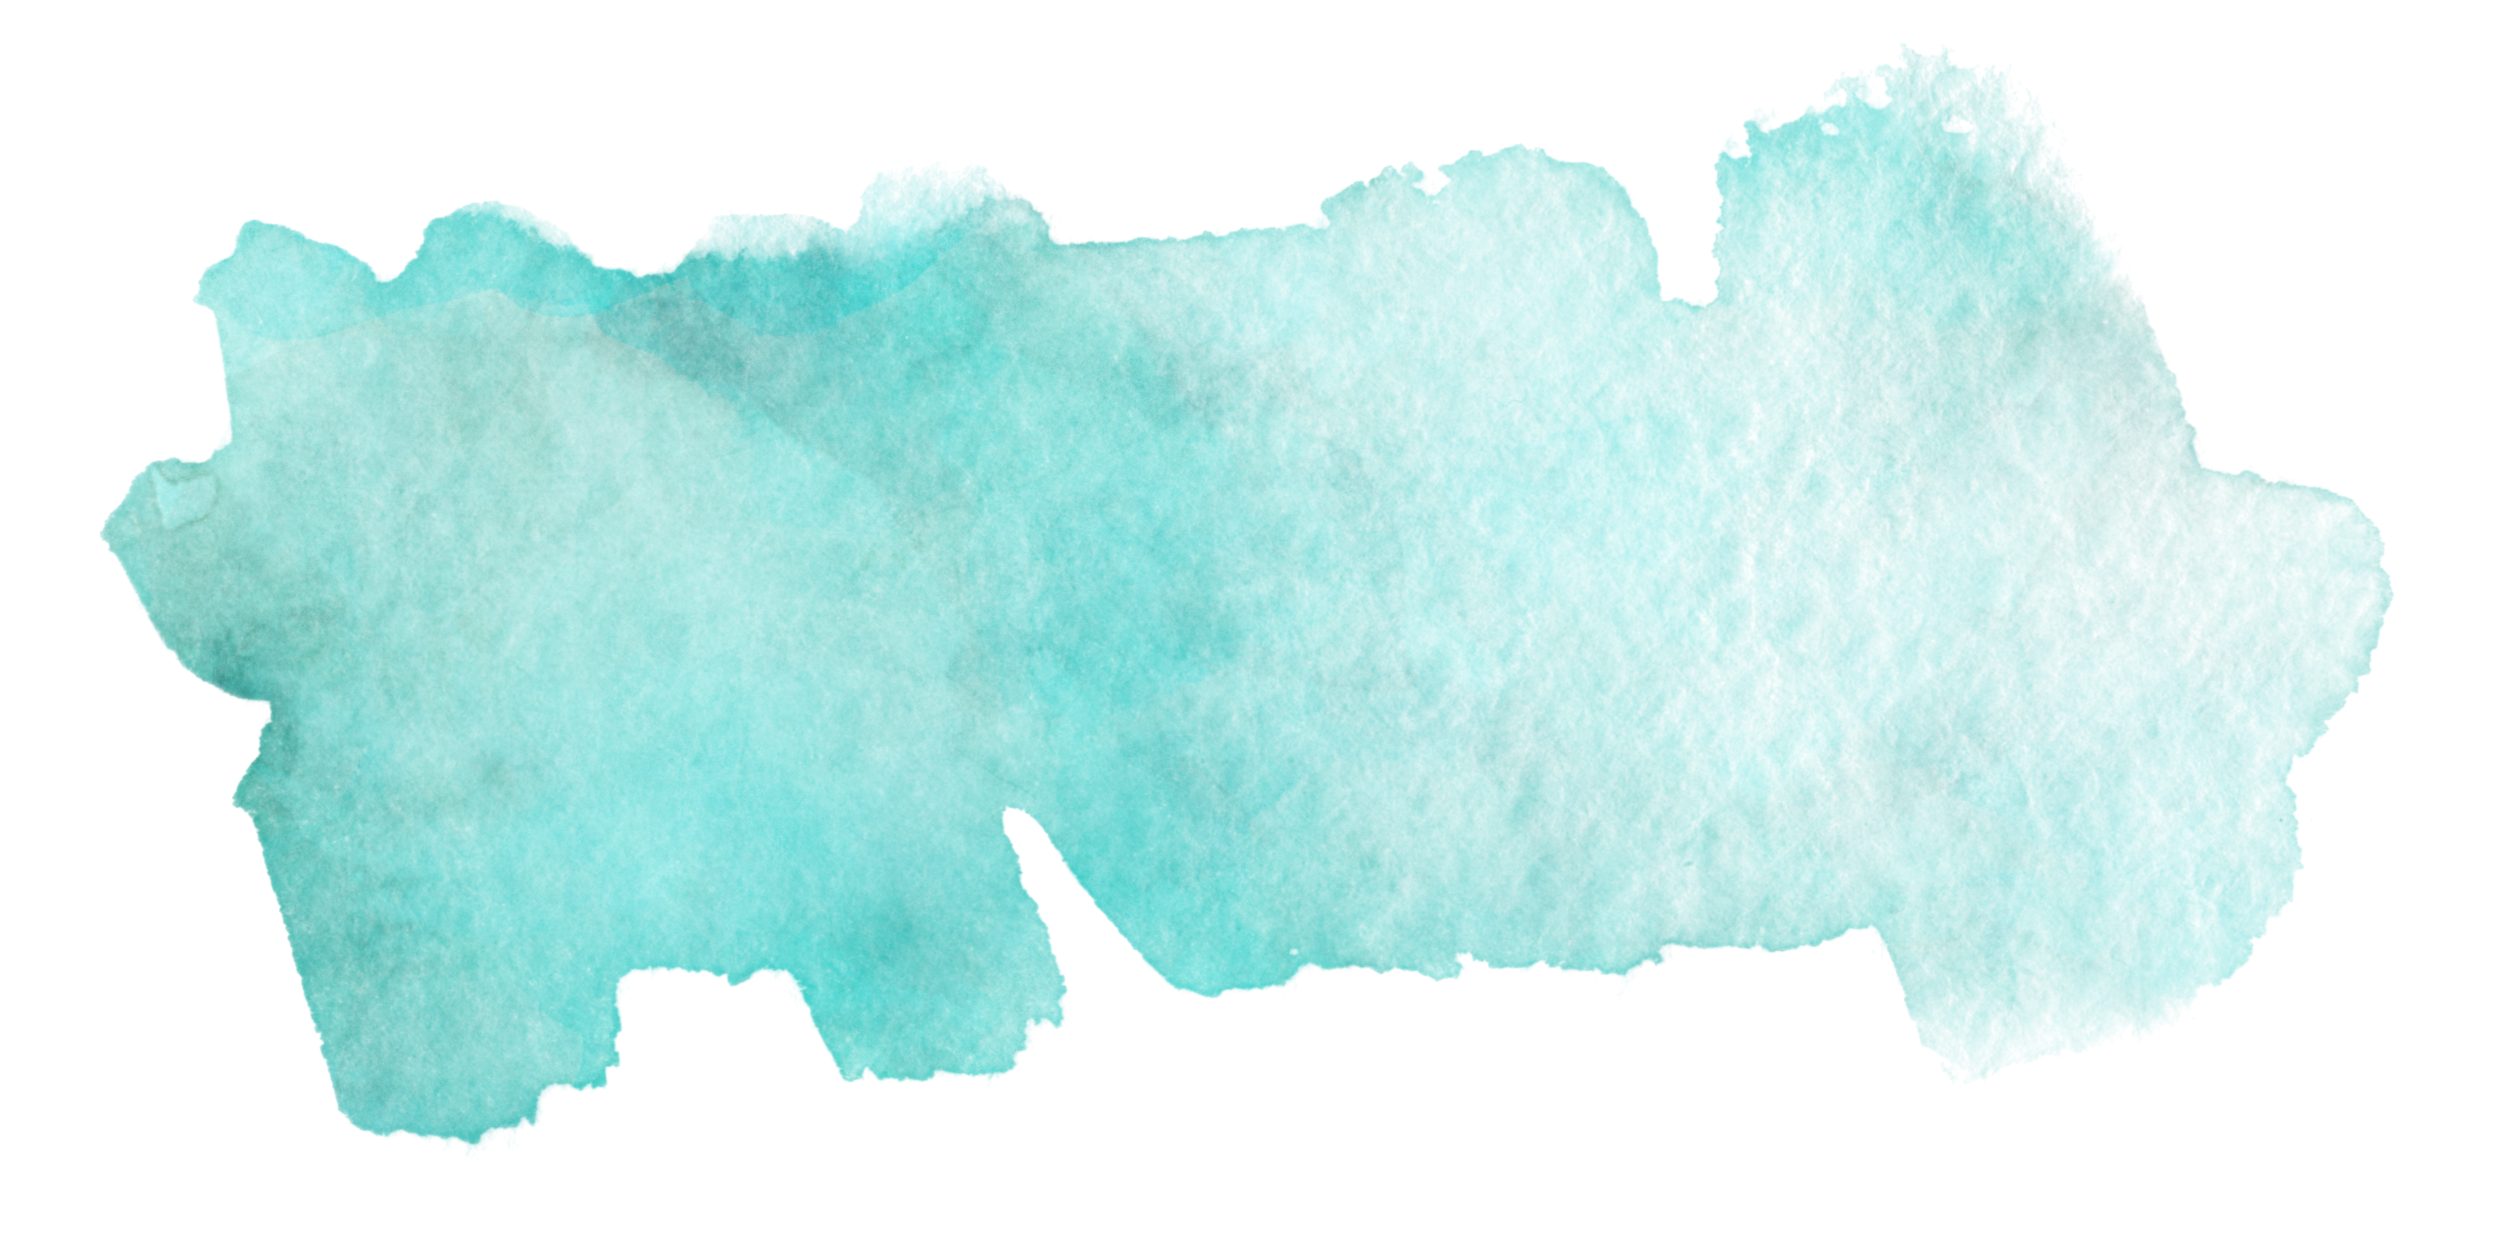 Turquoise Watercolor Brush Stroke By Junkydotcom Feel Free To Download This Shape Gr Turquoise Watercolor Turquoise Watercolor Wallpaper Watercolor Background